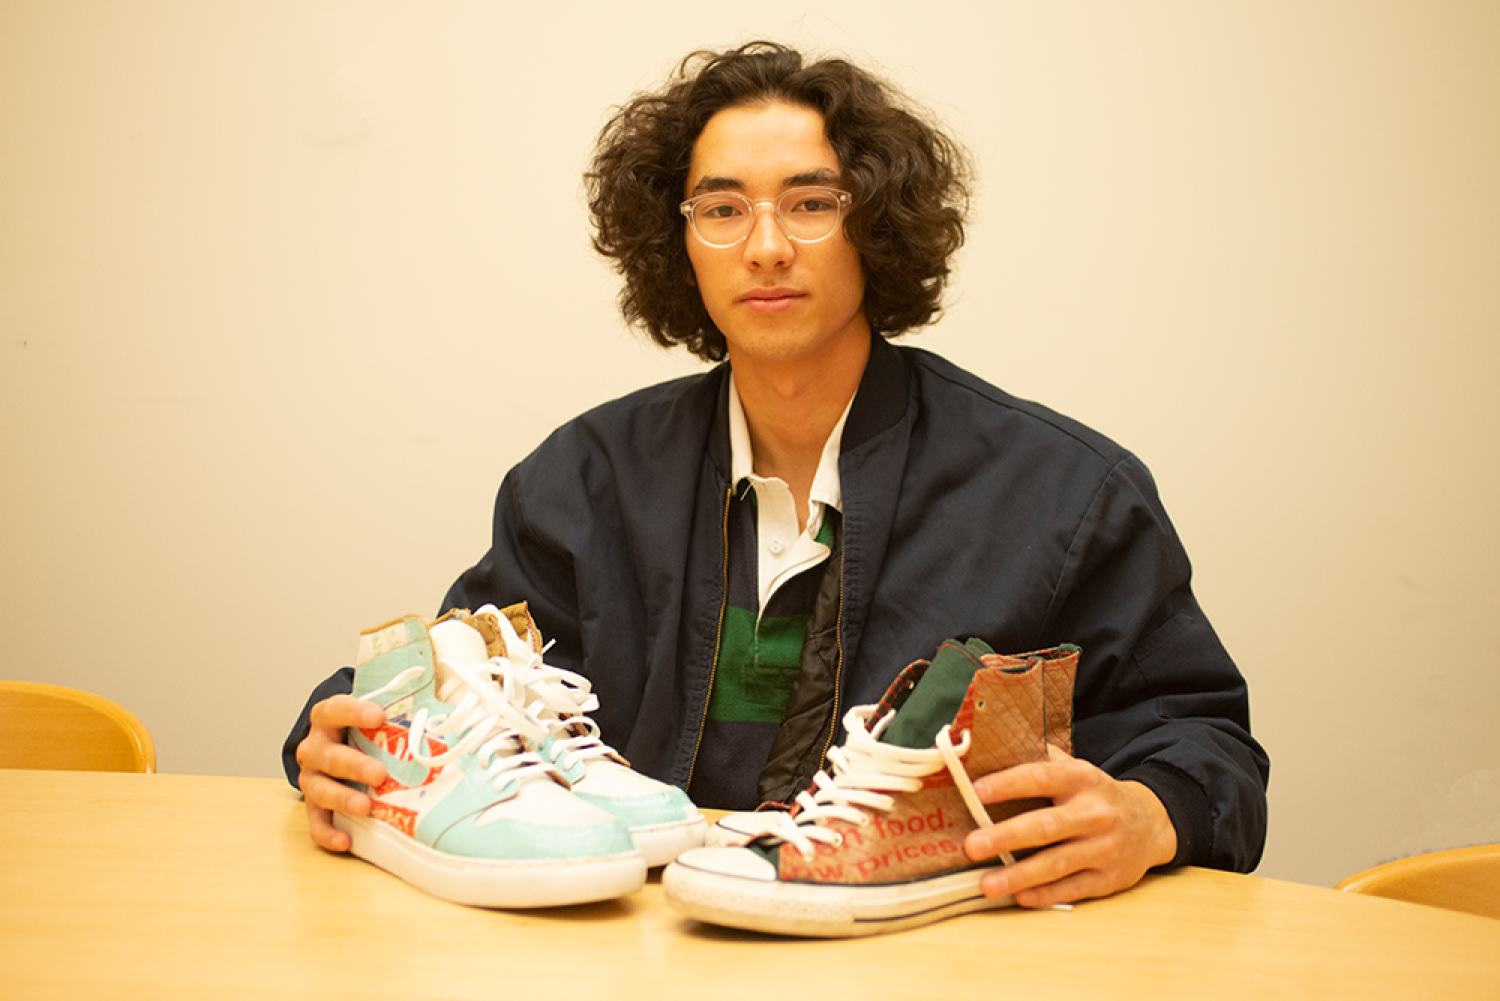 Toby Wu with handmade shoes, uppers made from recycled materials